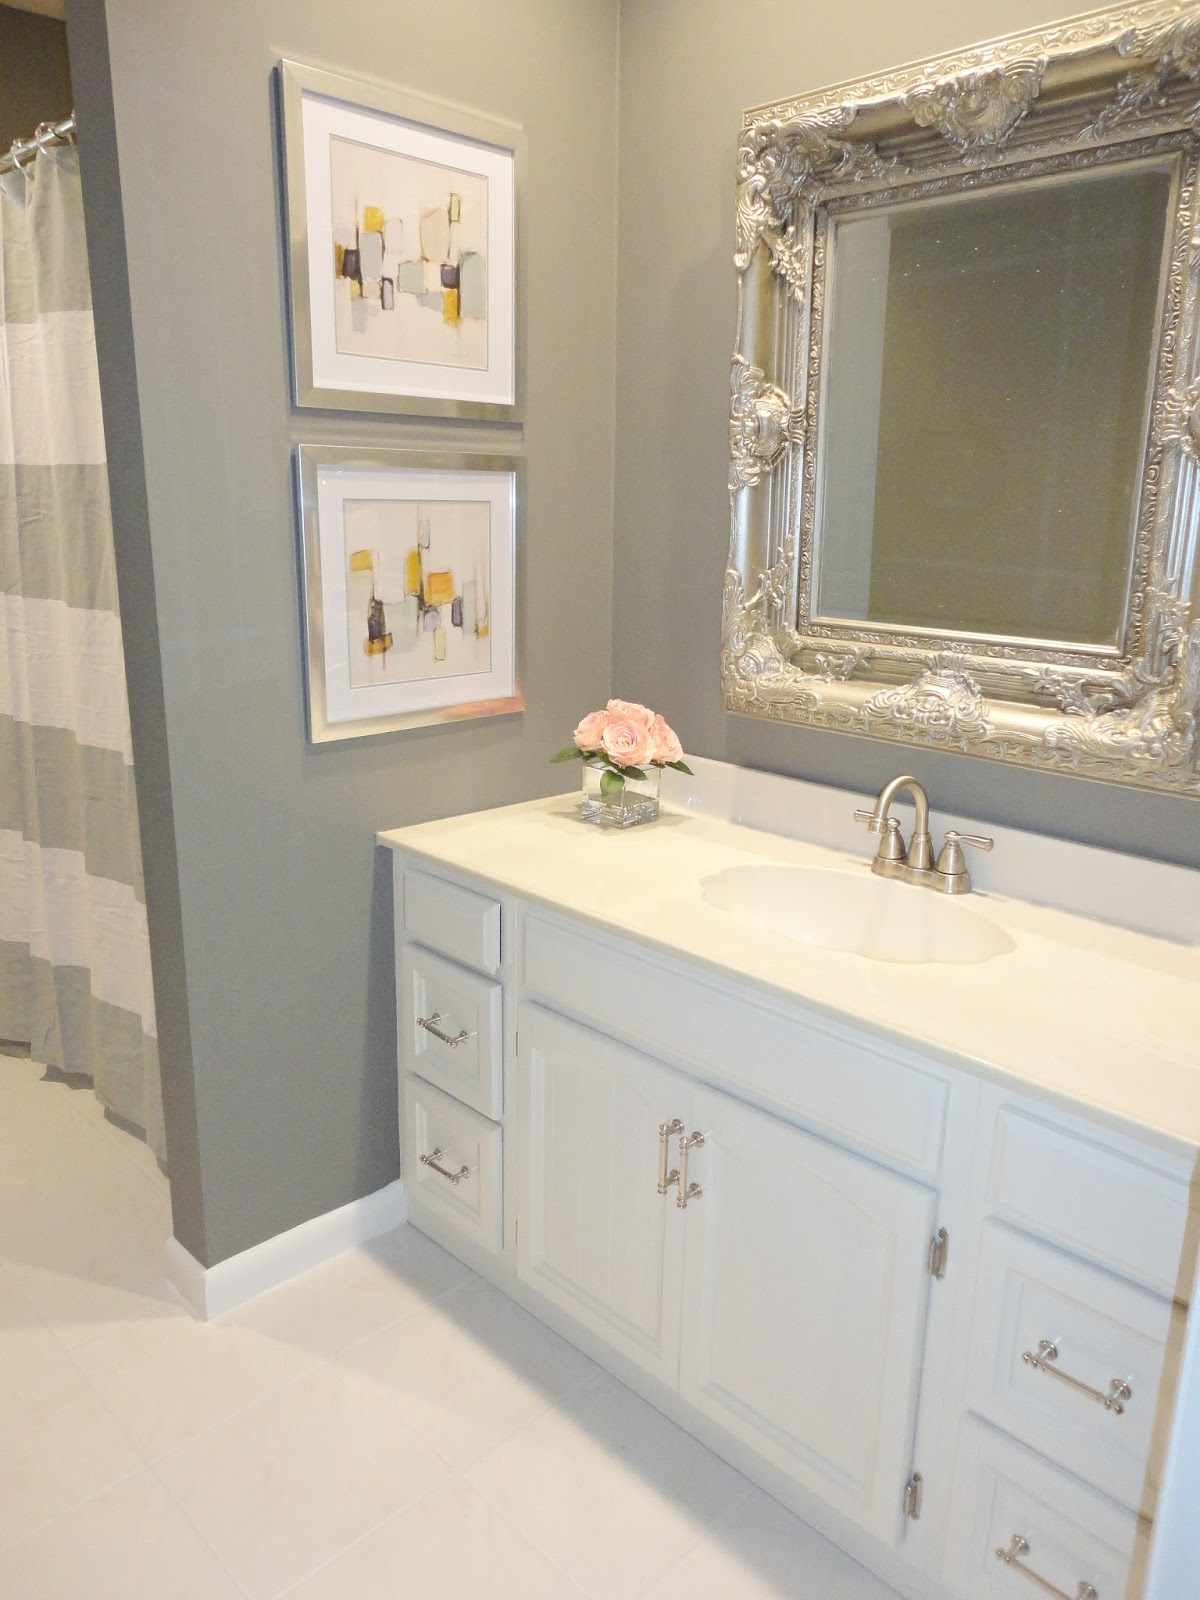 Livelovediy diy bathroom remodel on a budget Bathroom remodel pinterest